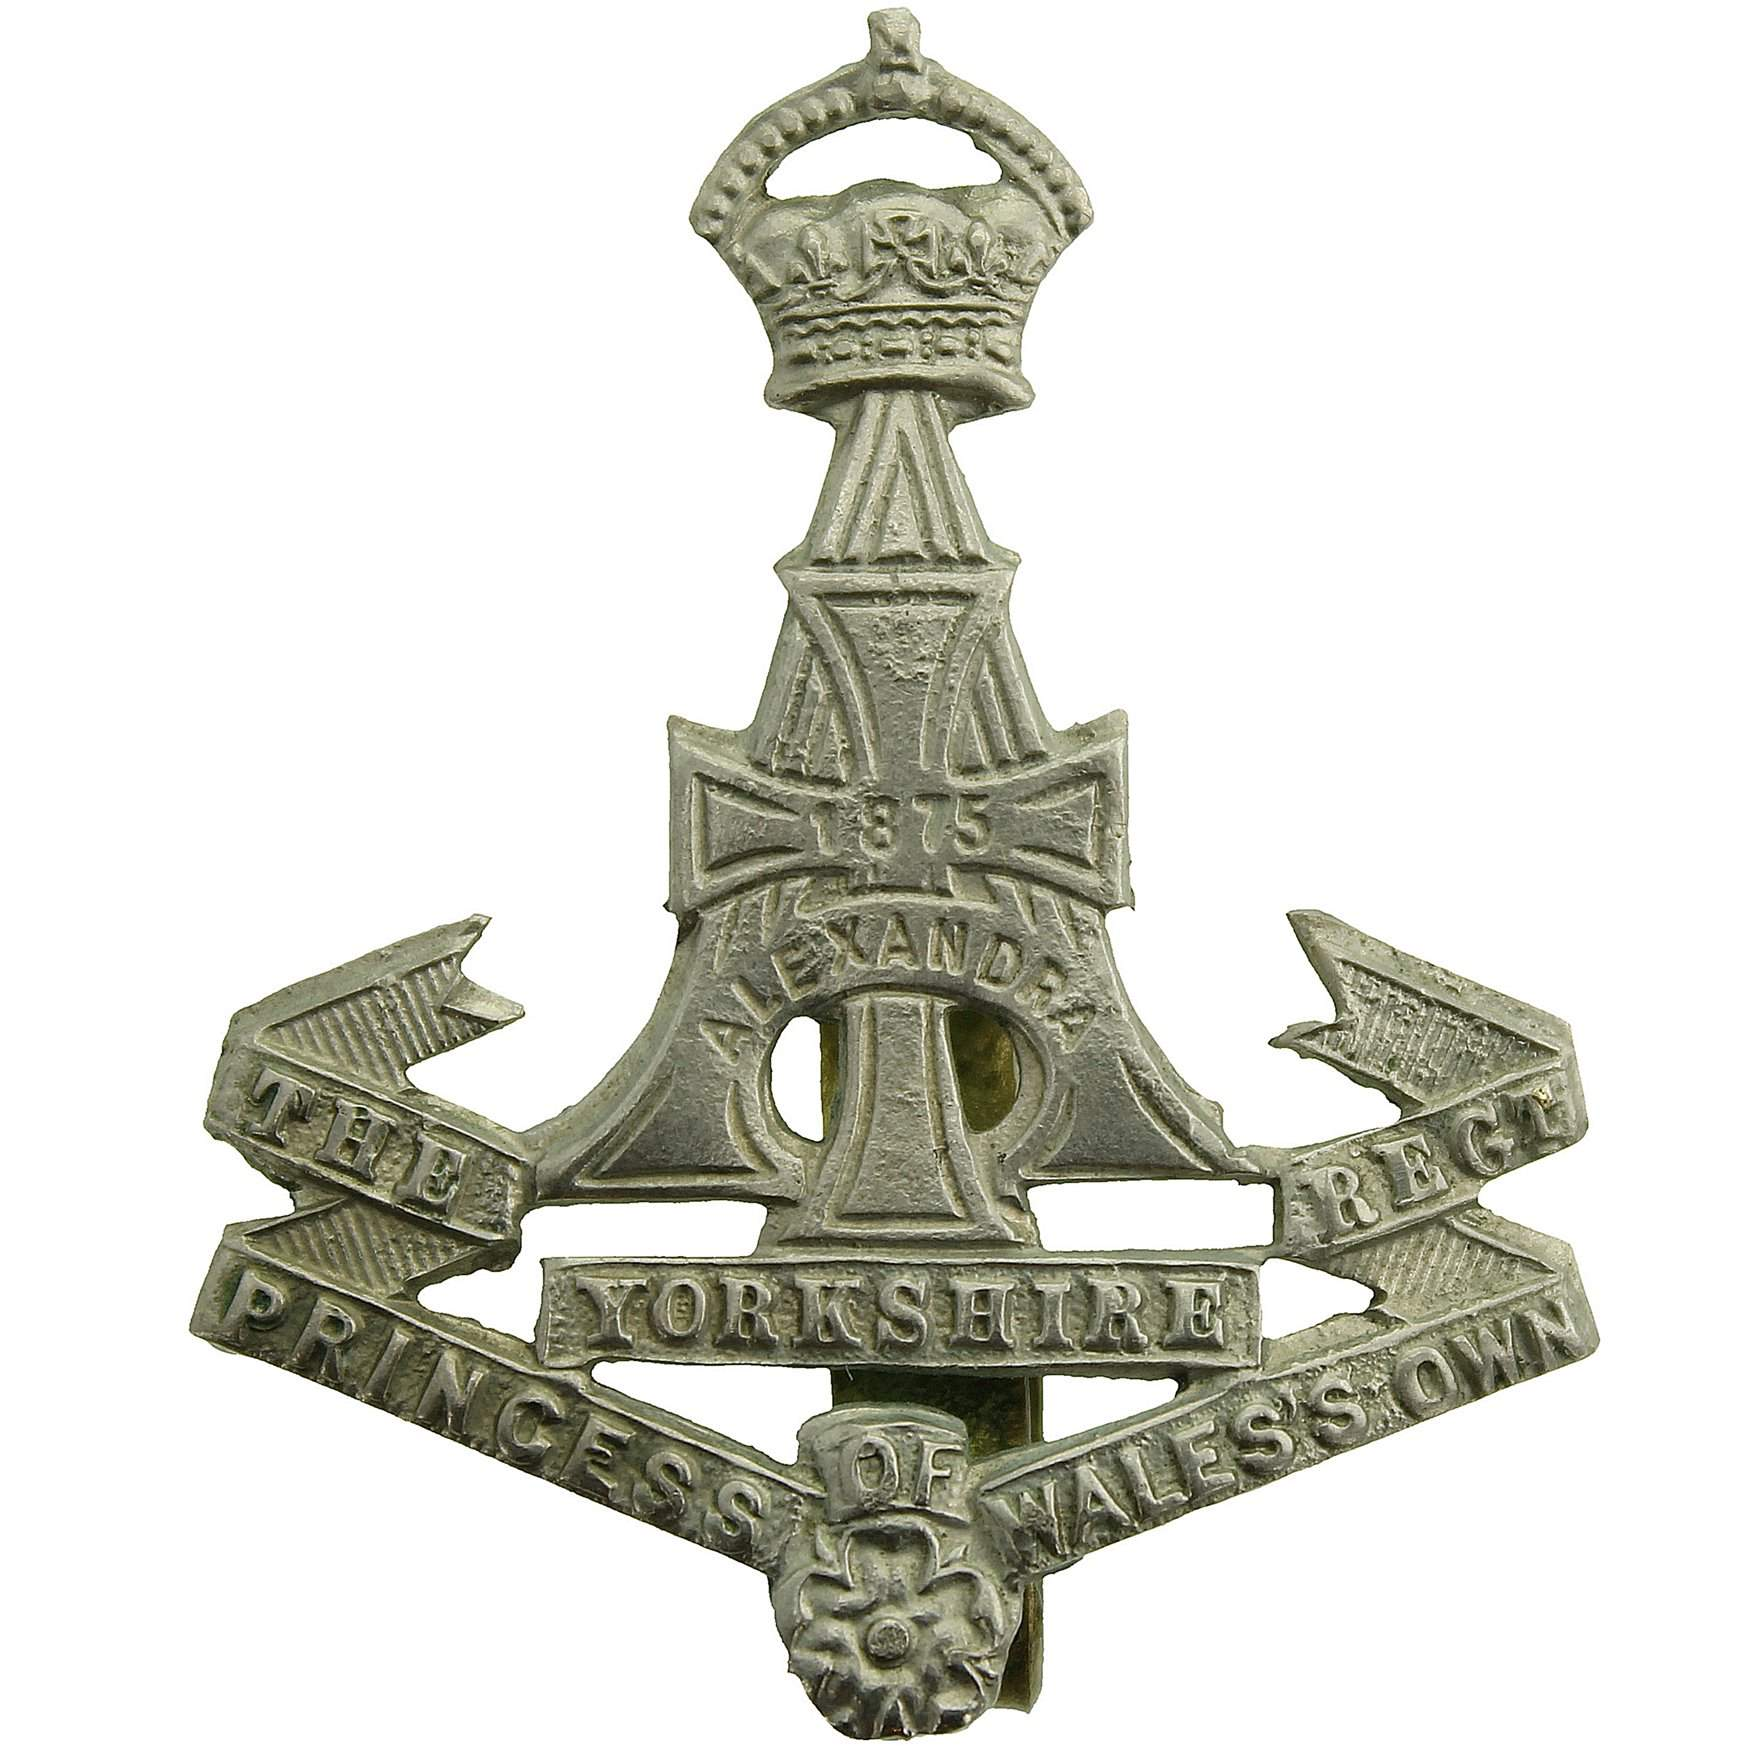 Armed Forces The Green Howards Veteran Lapel pin badge.